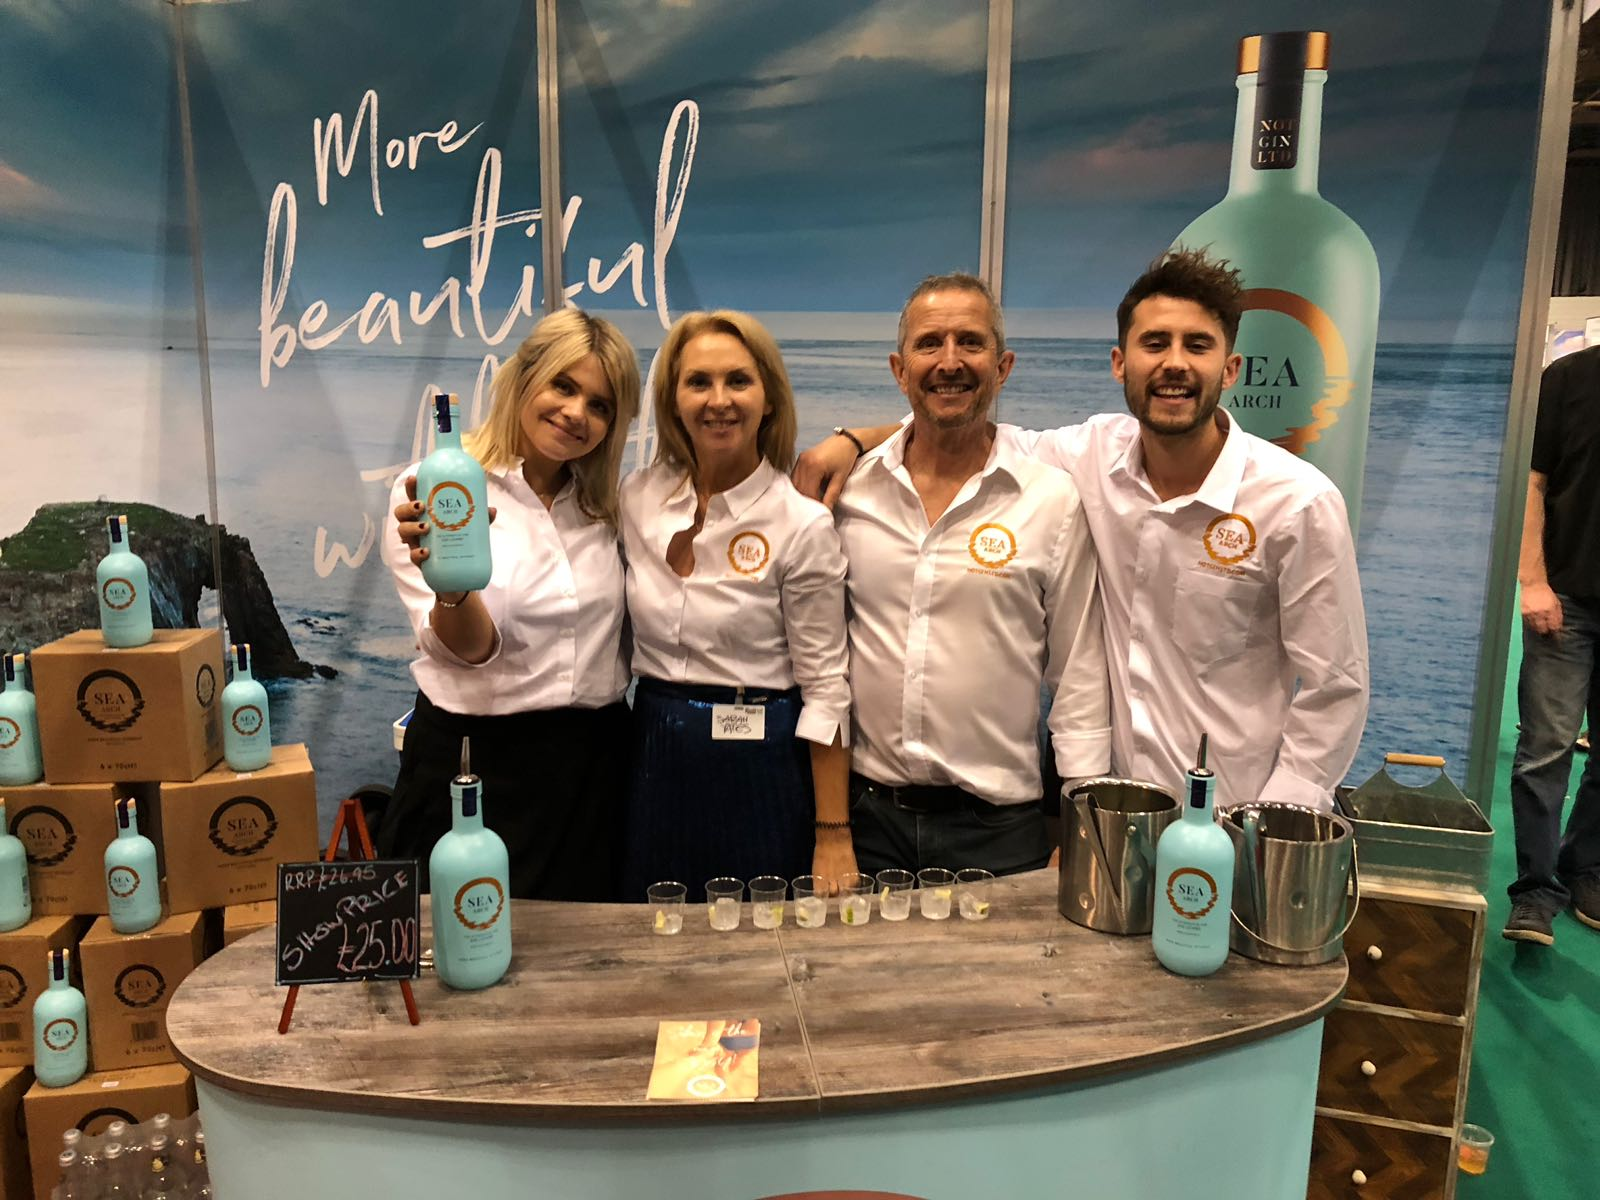 Sea Arch non-alcoholic gin at BBC Good Food Show SSE Glasgow